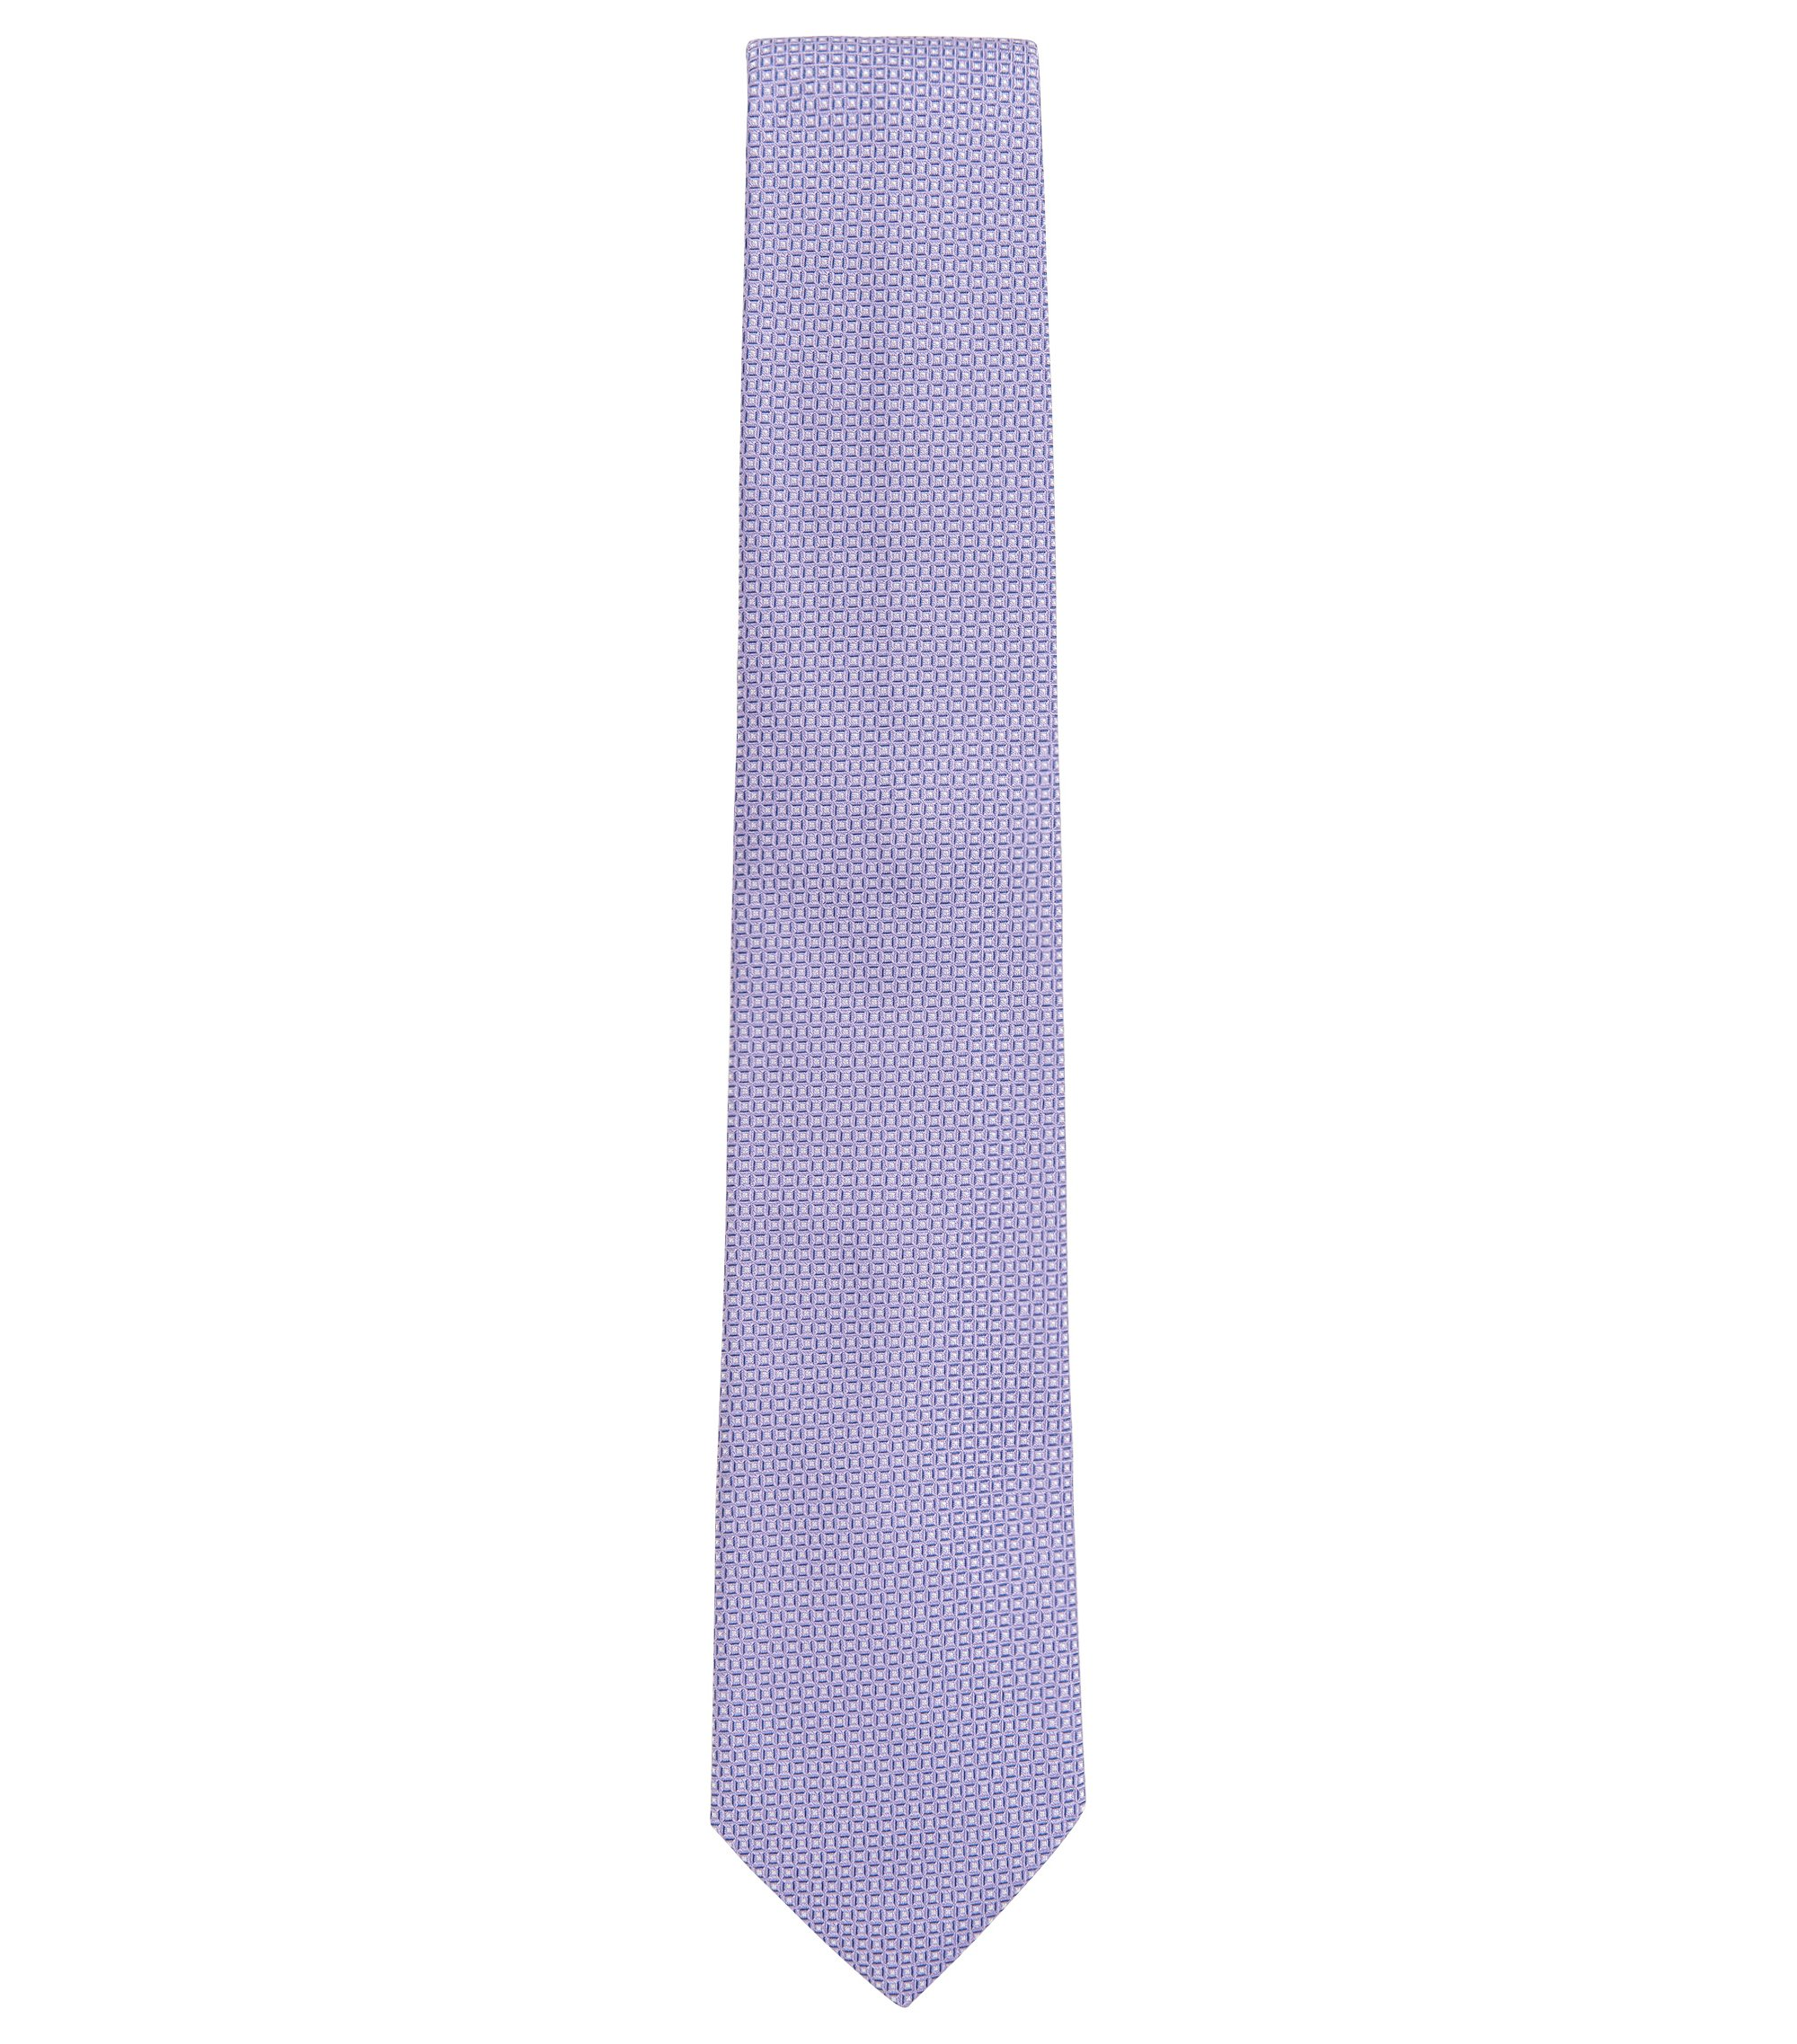 Patterned Italian Silk Tie, Light Purple